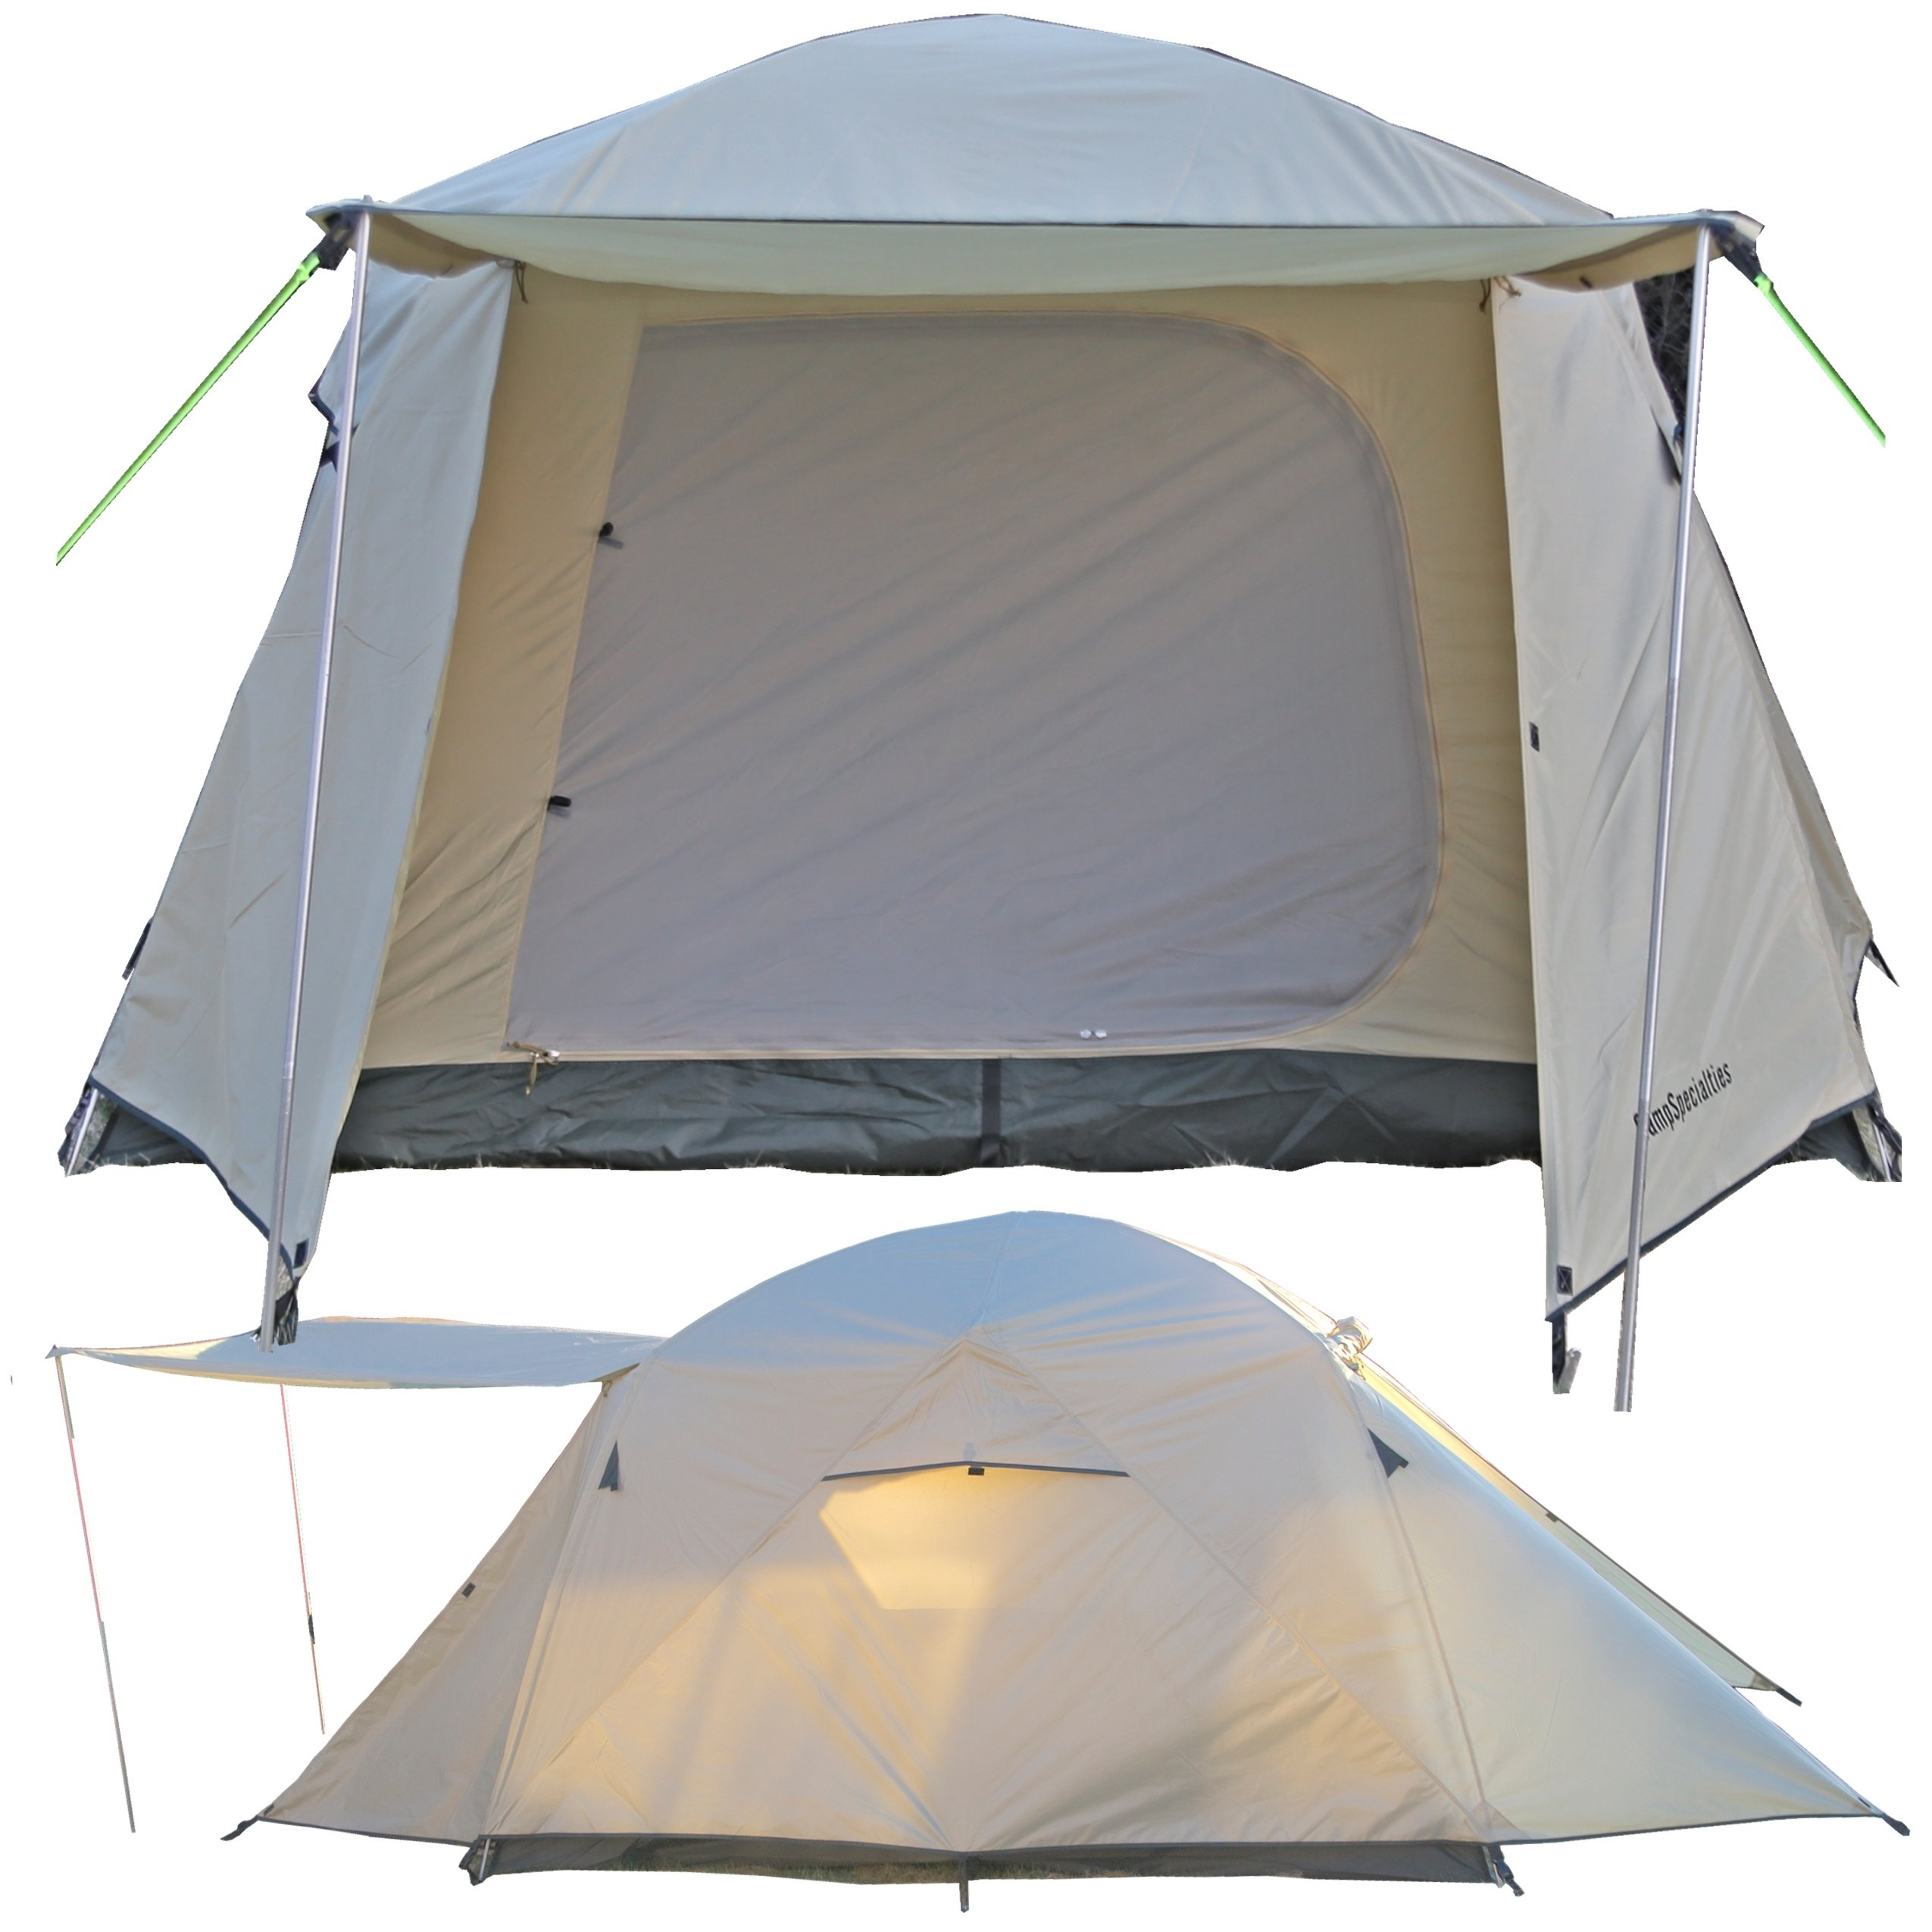 Camp Time Expedition Tent, Fast set-up, 100 square feet including vestibules, floor liner, awning poles, 7001-T6 aluminum, Designed for your cots-stools-tables,.